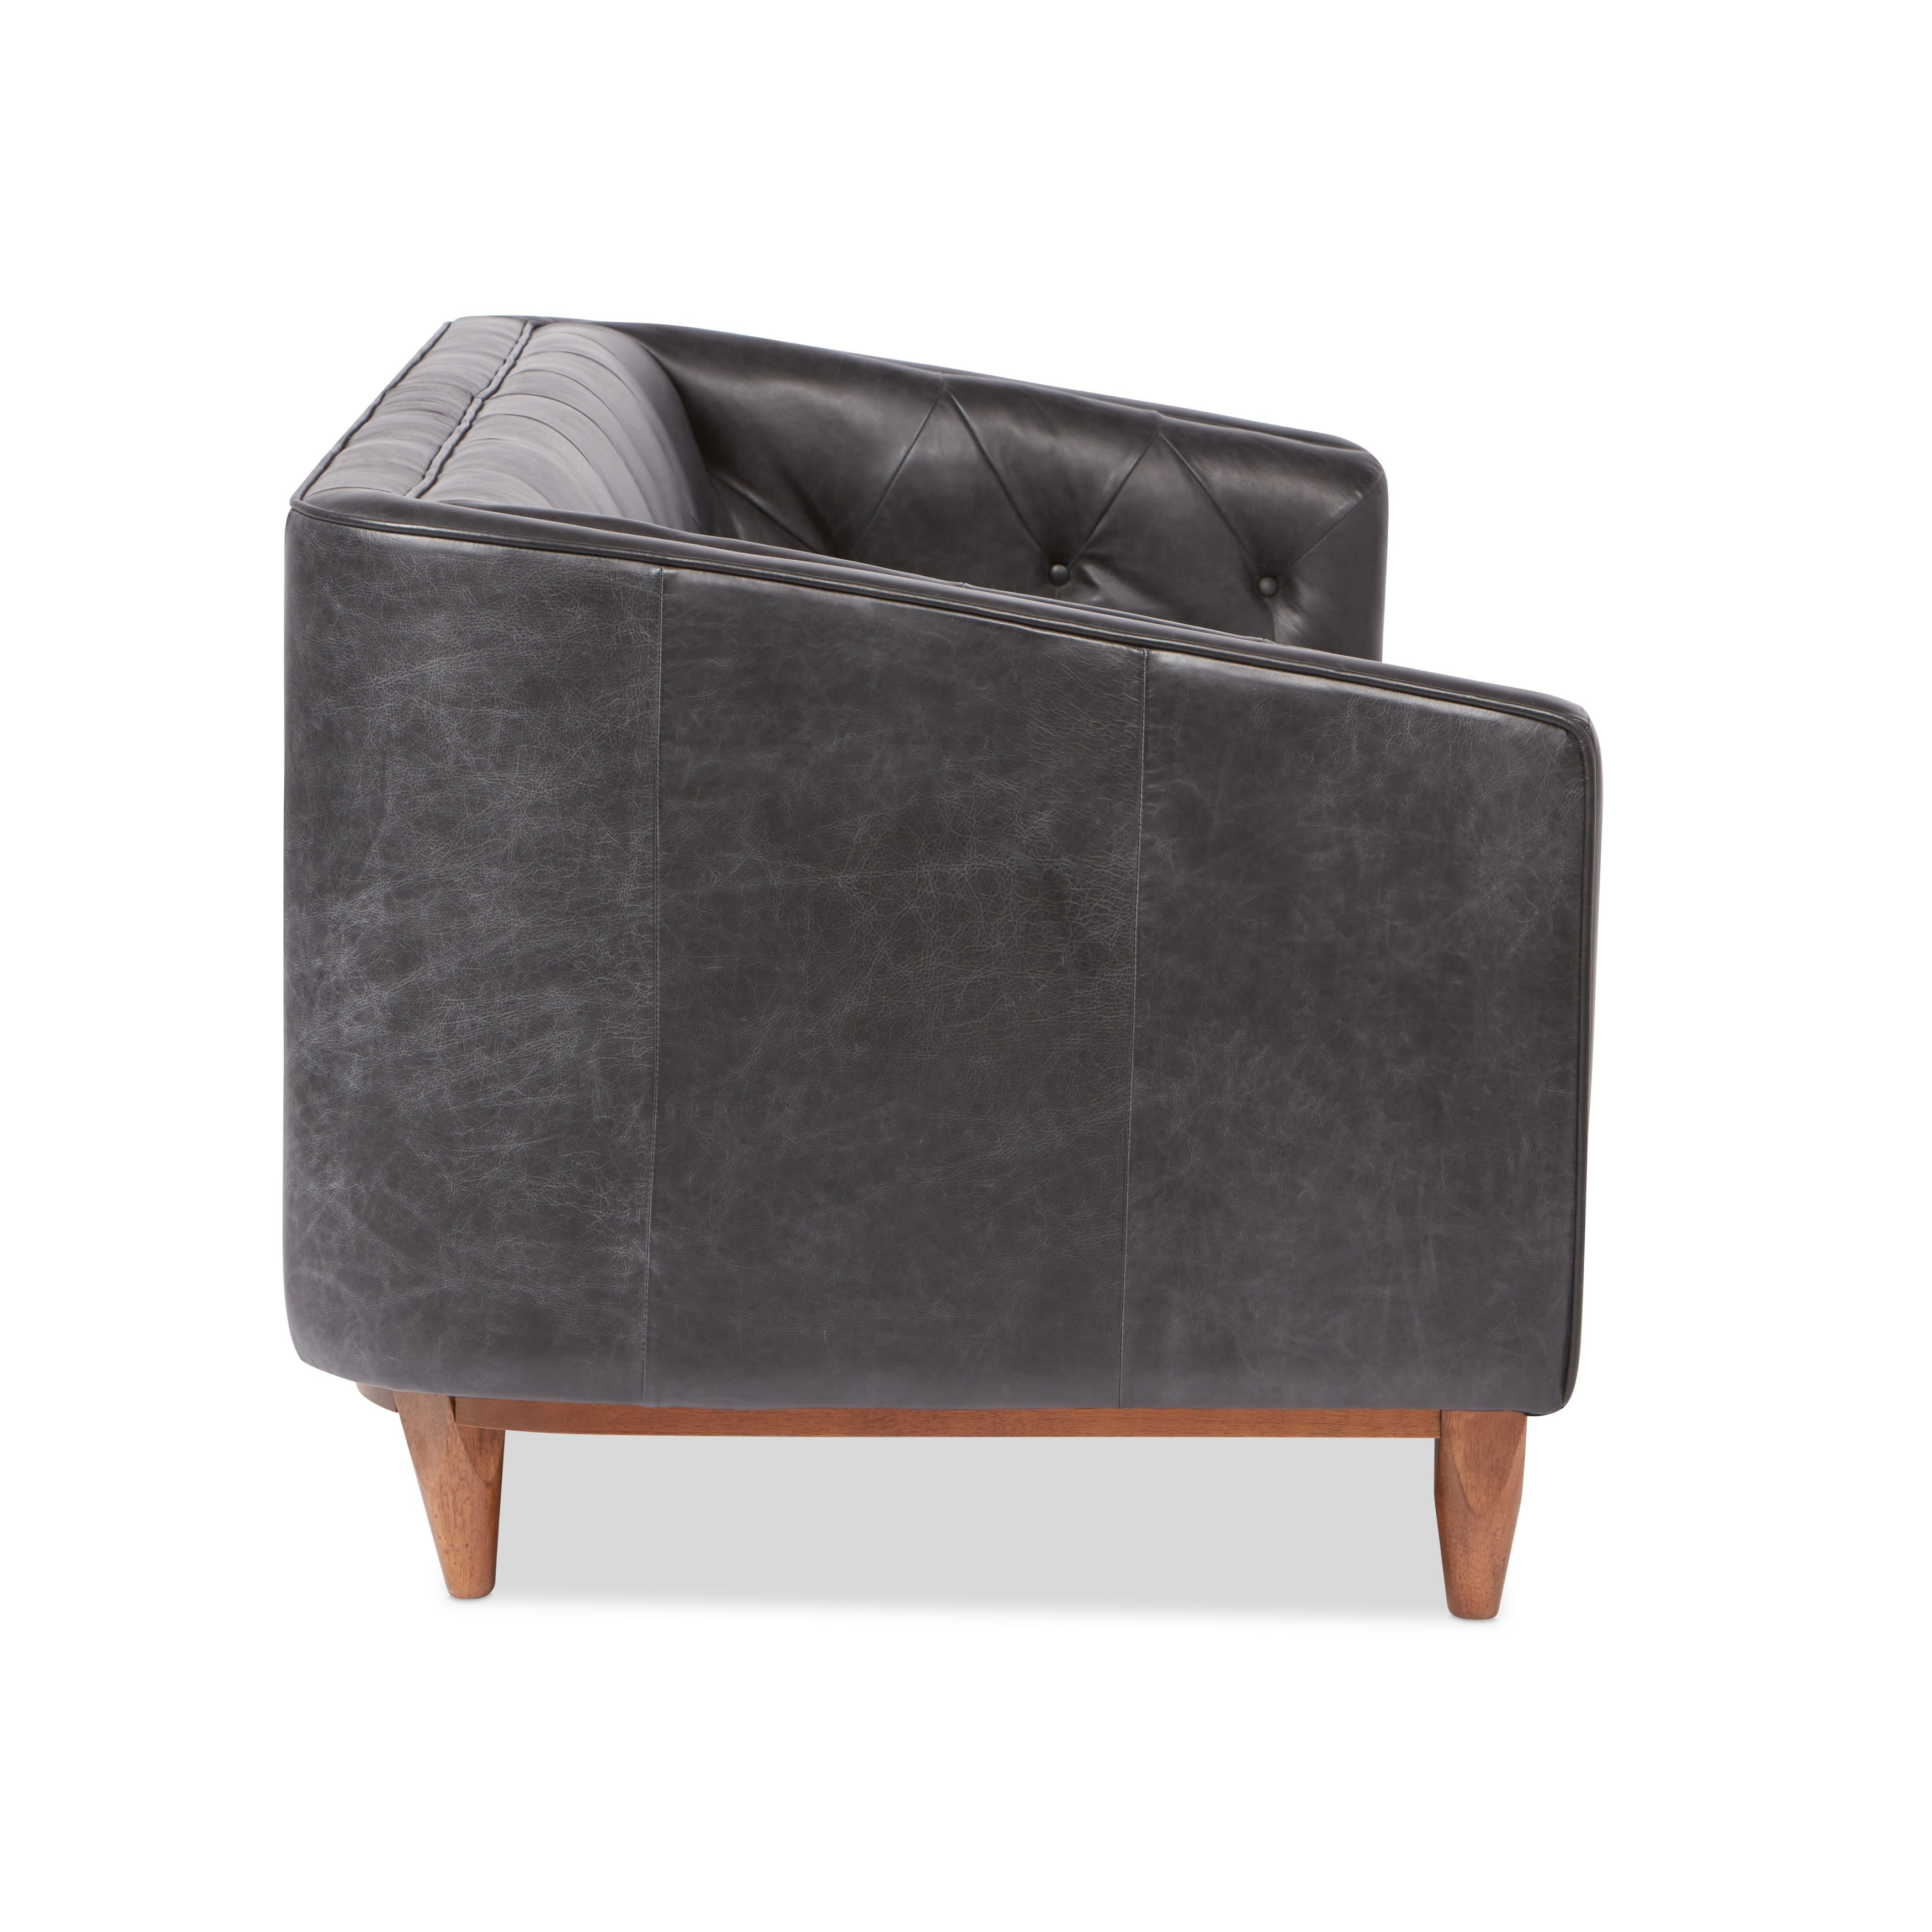 style vintage c tufted leather chesterfieldstyle sofa settees chesterfield products chair sofas